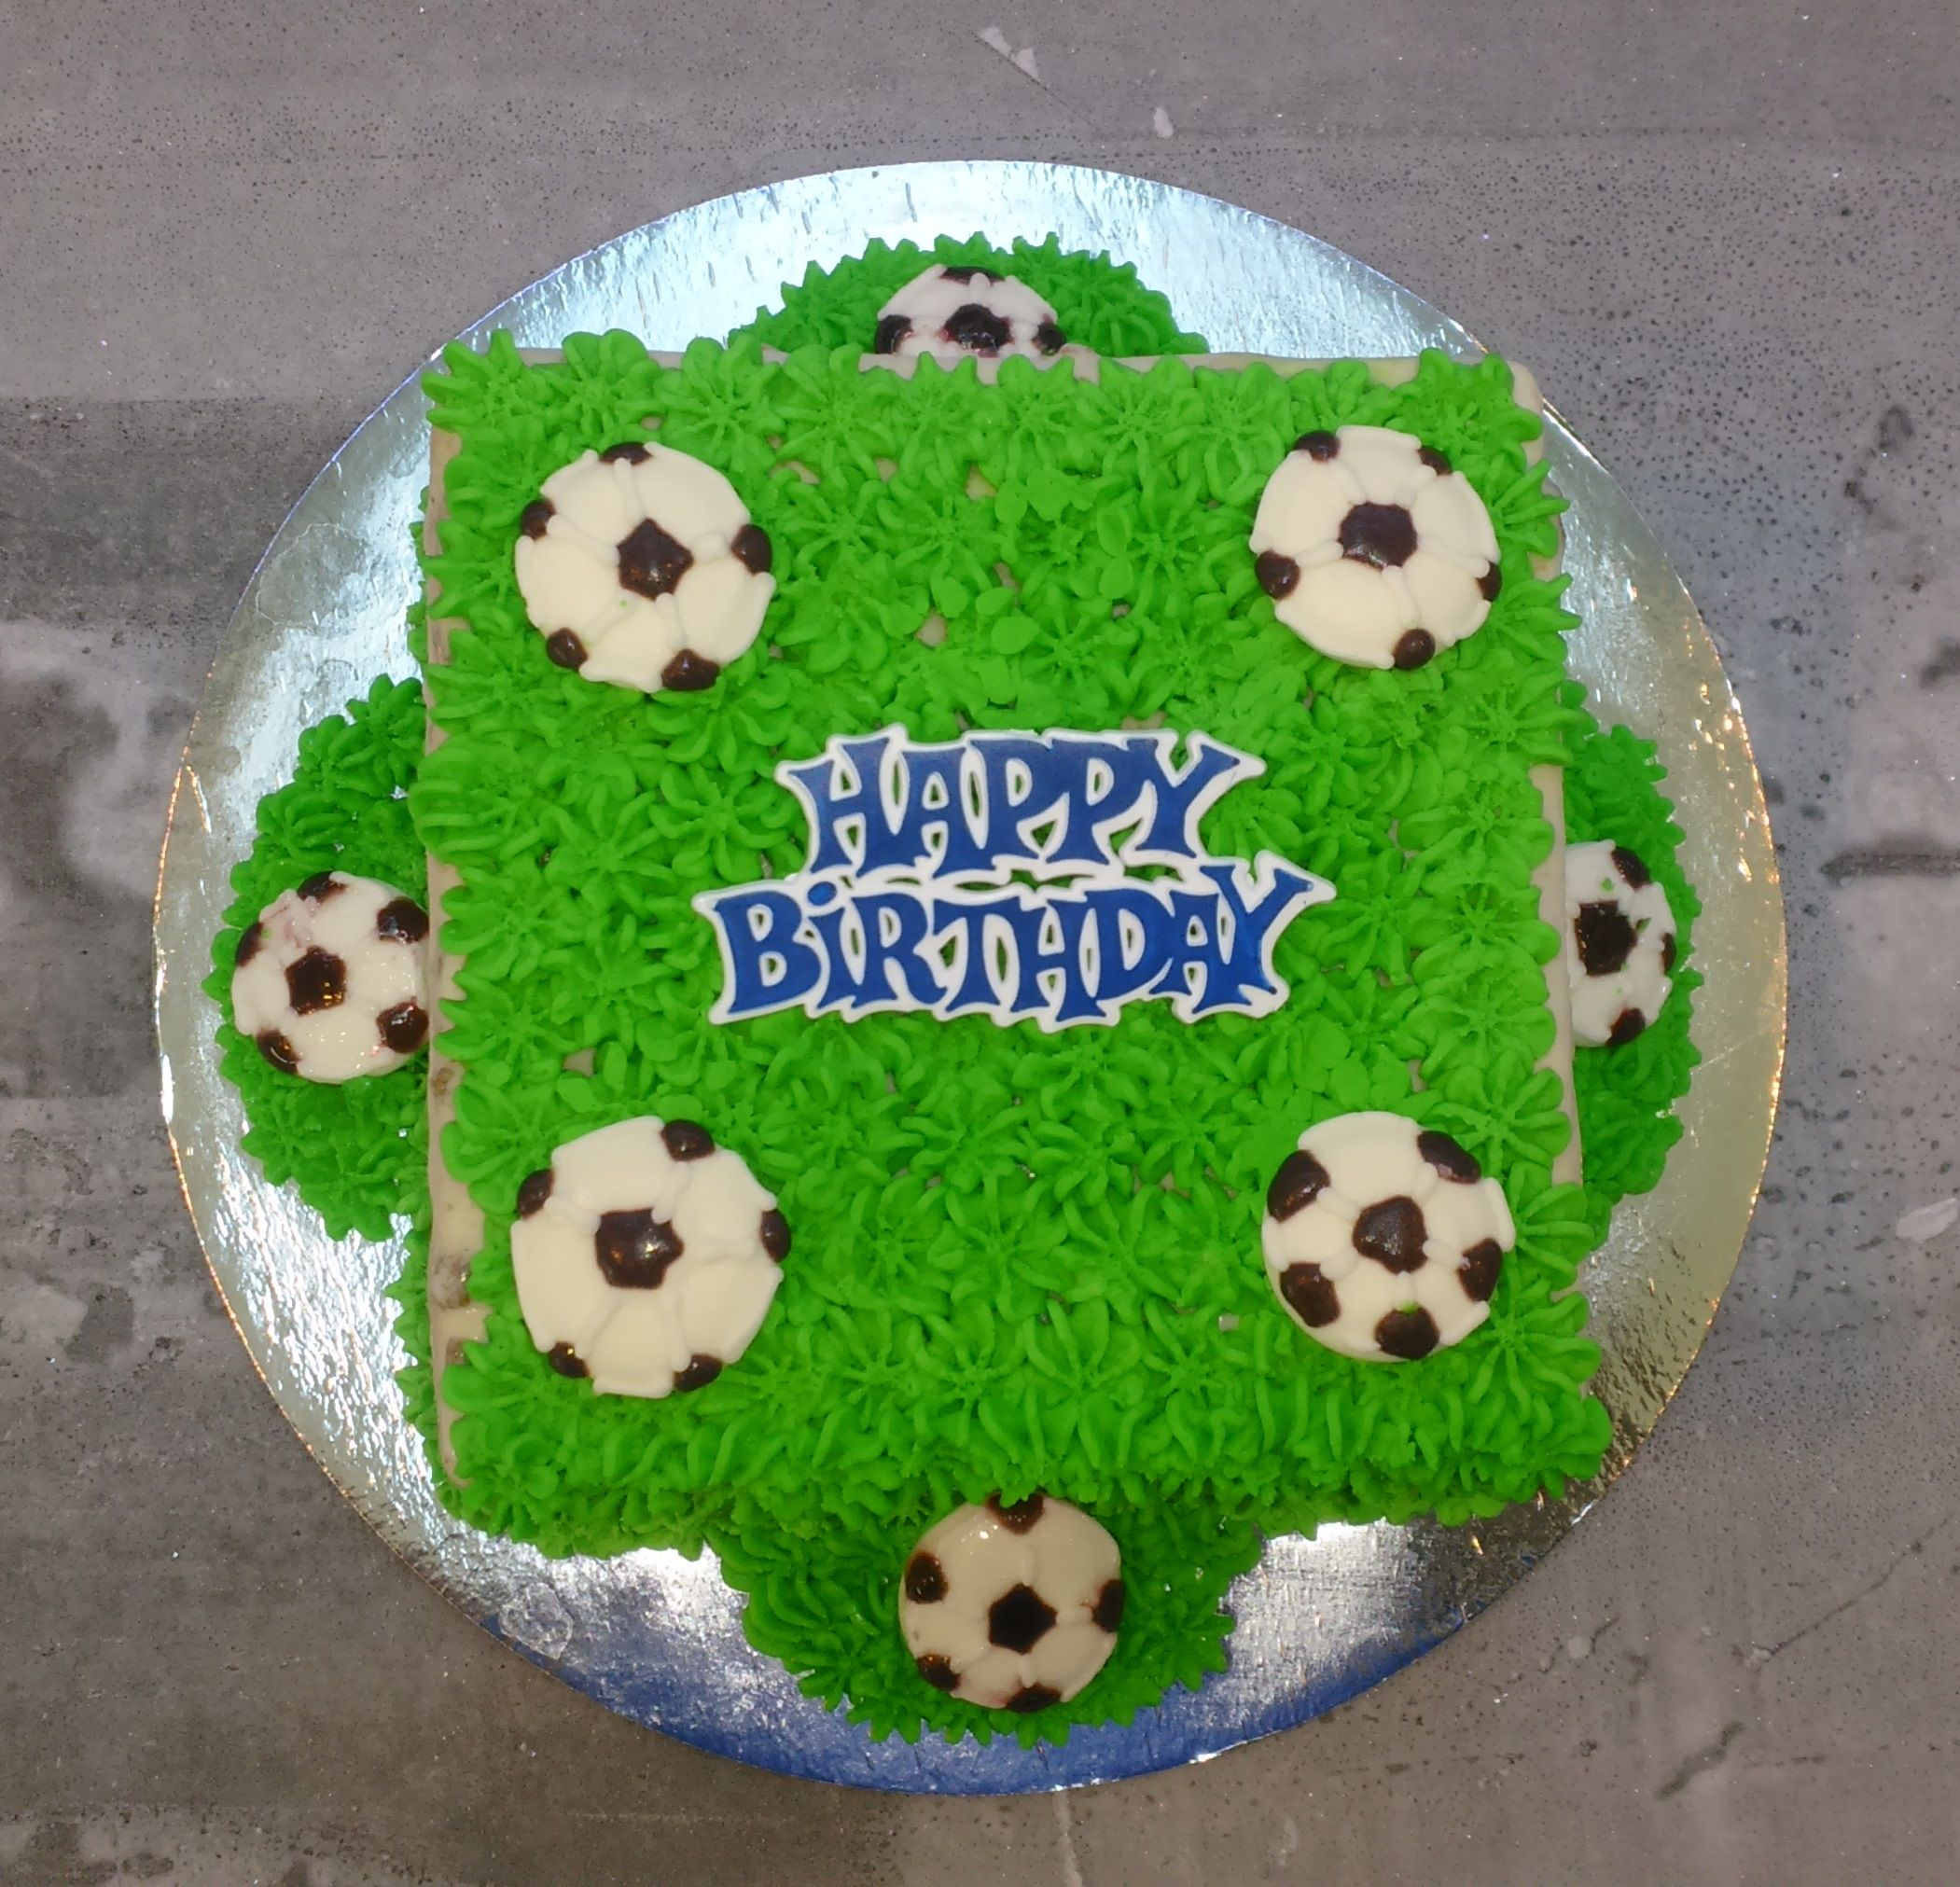 Cold Rock Ice Cream Cake Soccer Green